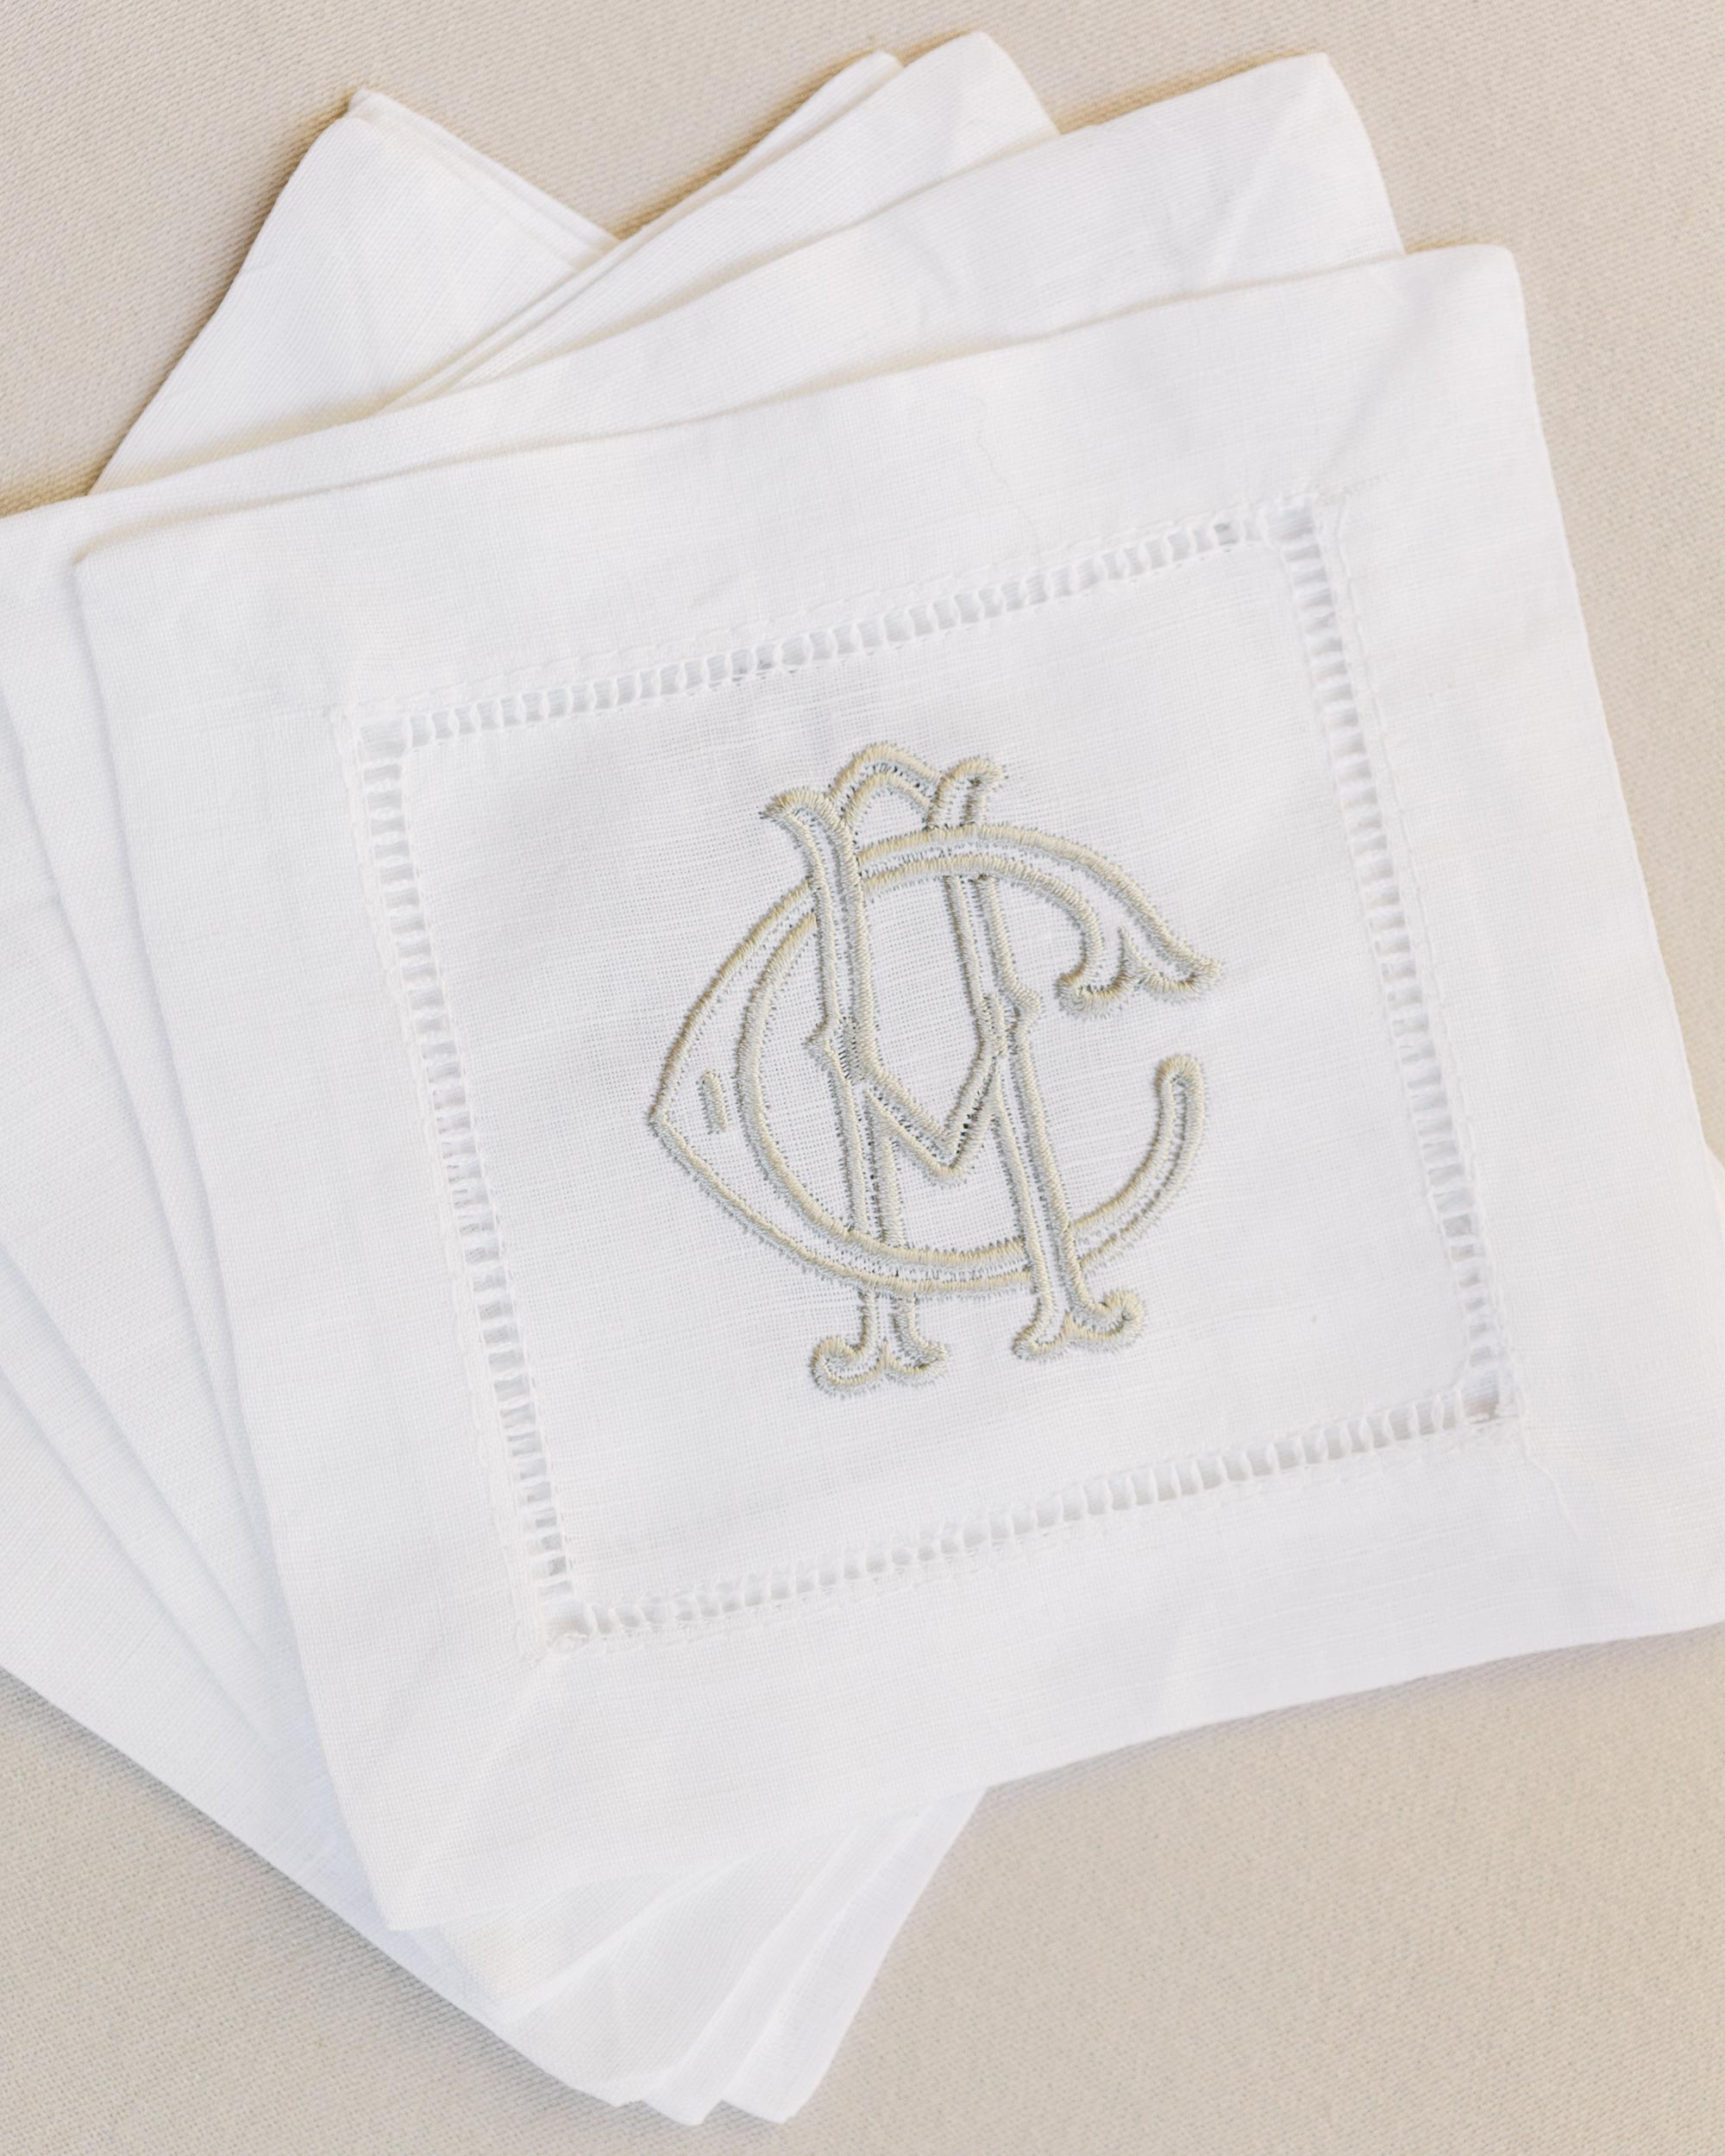 anneclaire-chris-wedding-france-napkins-100-s113034-00716.jpg